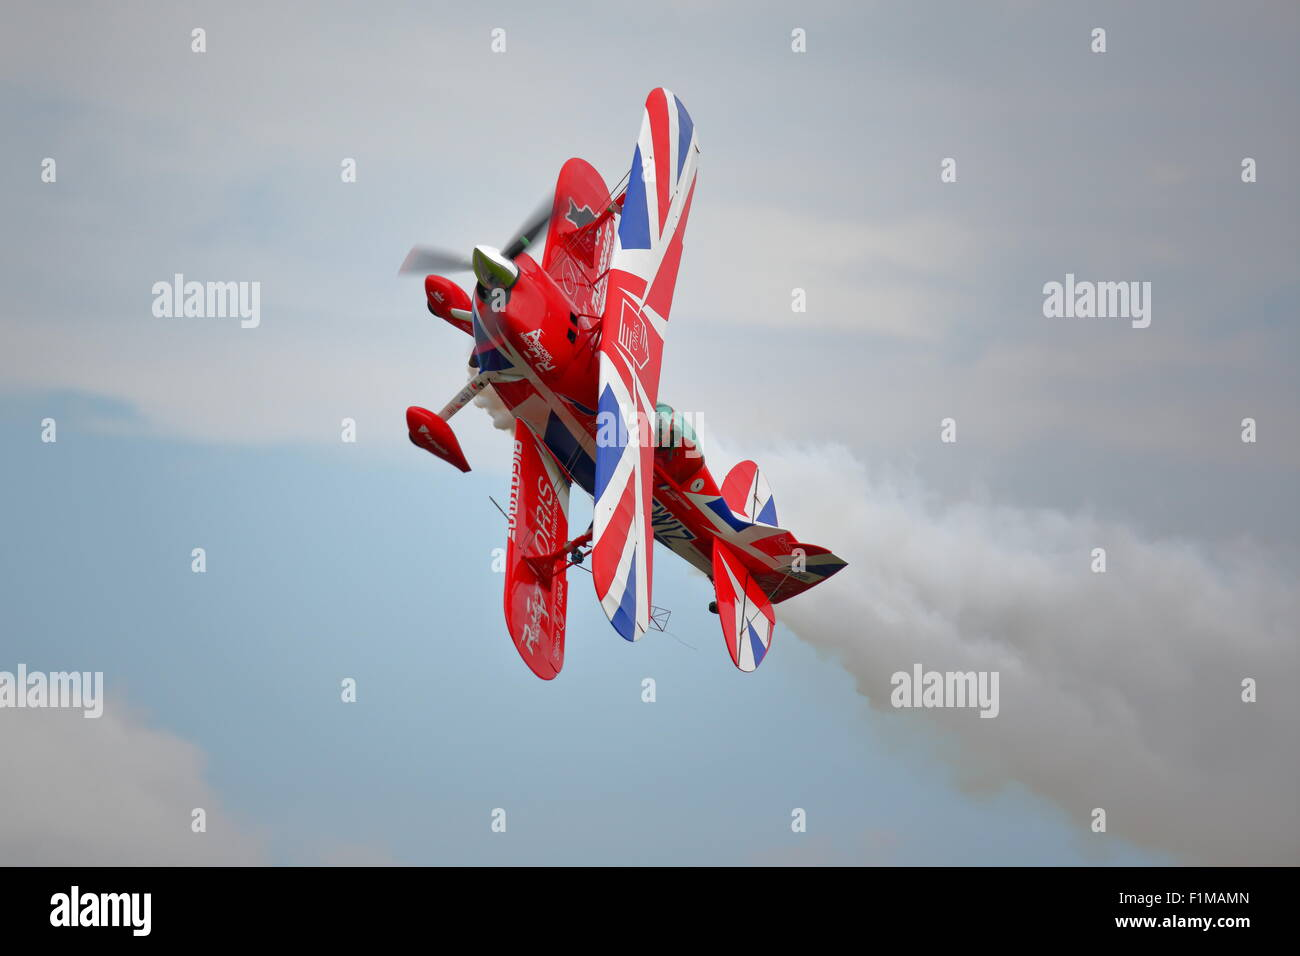 Rich Goodwin displays some extreme aerobatics at the Dunsfold Wings and Wheels Show with his Pitts Special - Stock Image